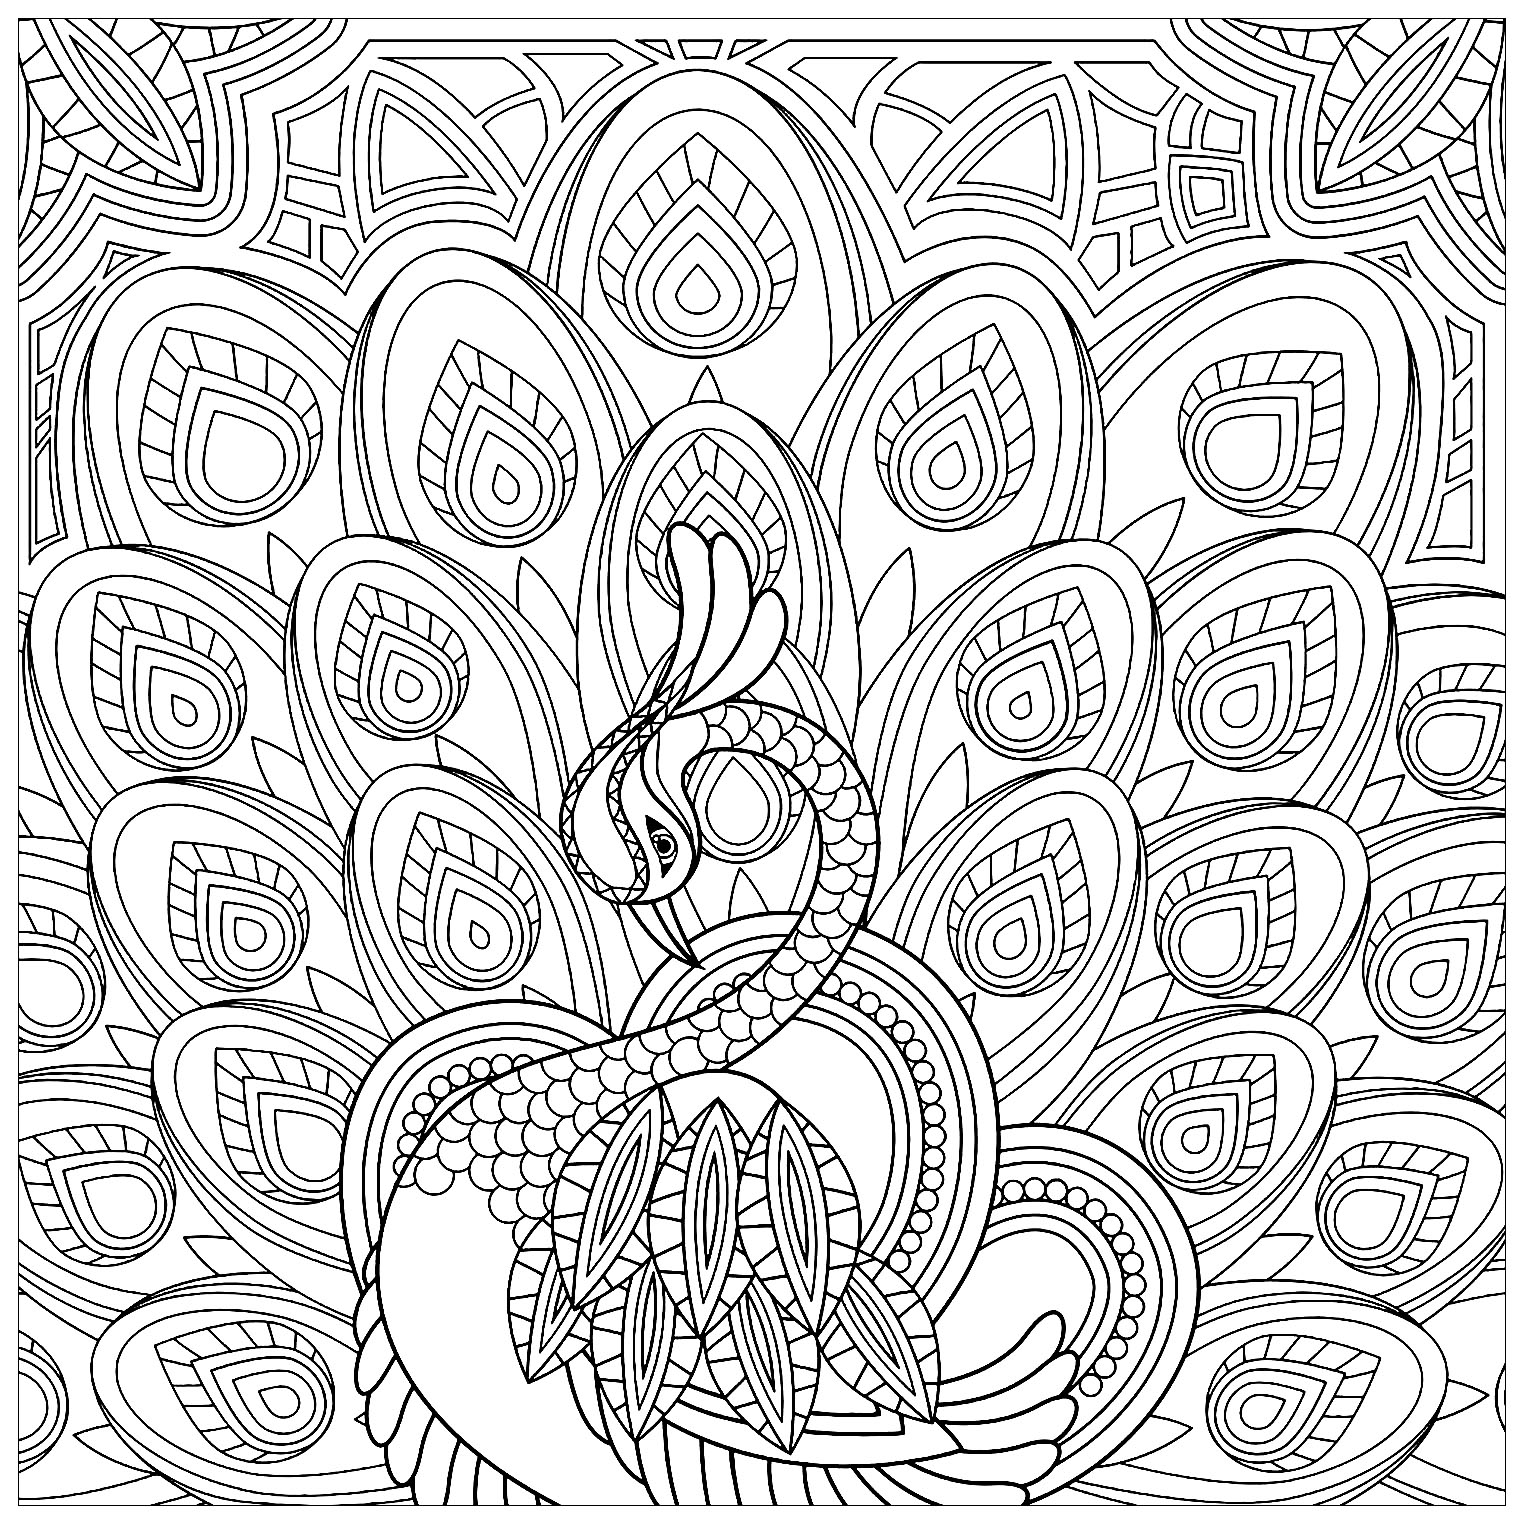 Peacock Color Page Squared Coloring Page Of A Peacock Peacocks Adult Coloring Pages